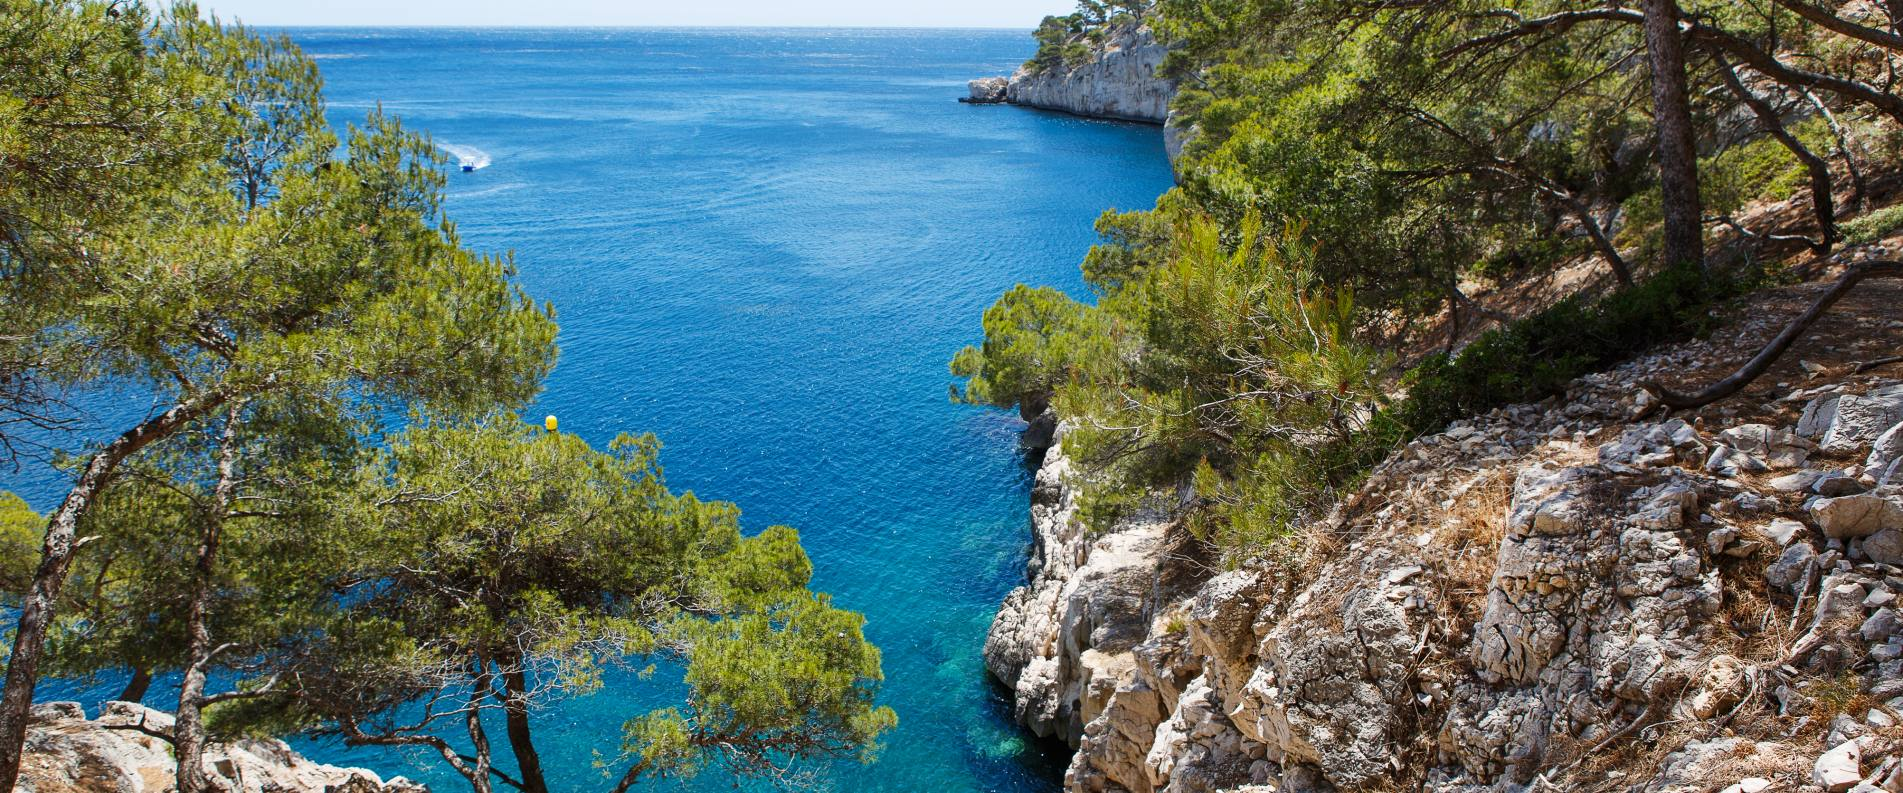 shutterstock_575350441 - Calanques Cassis